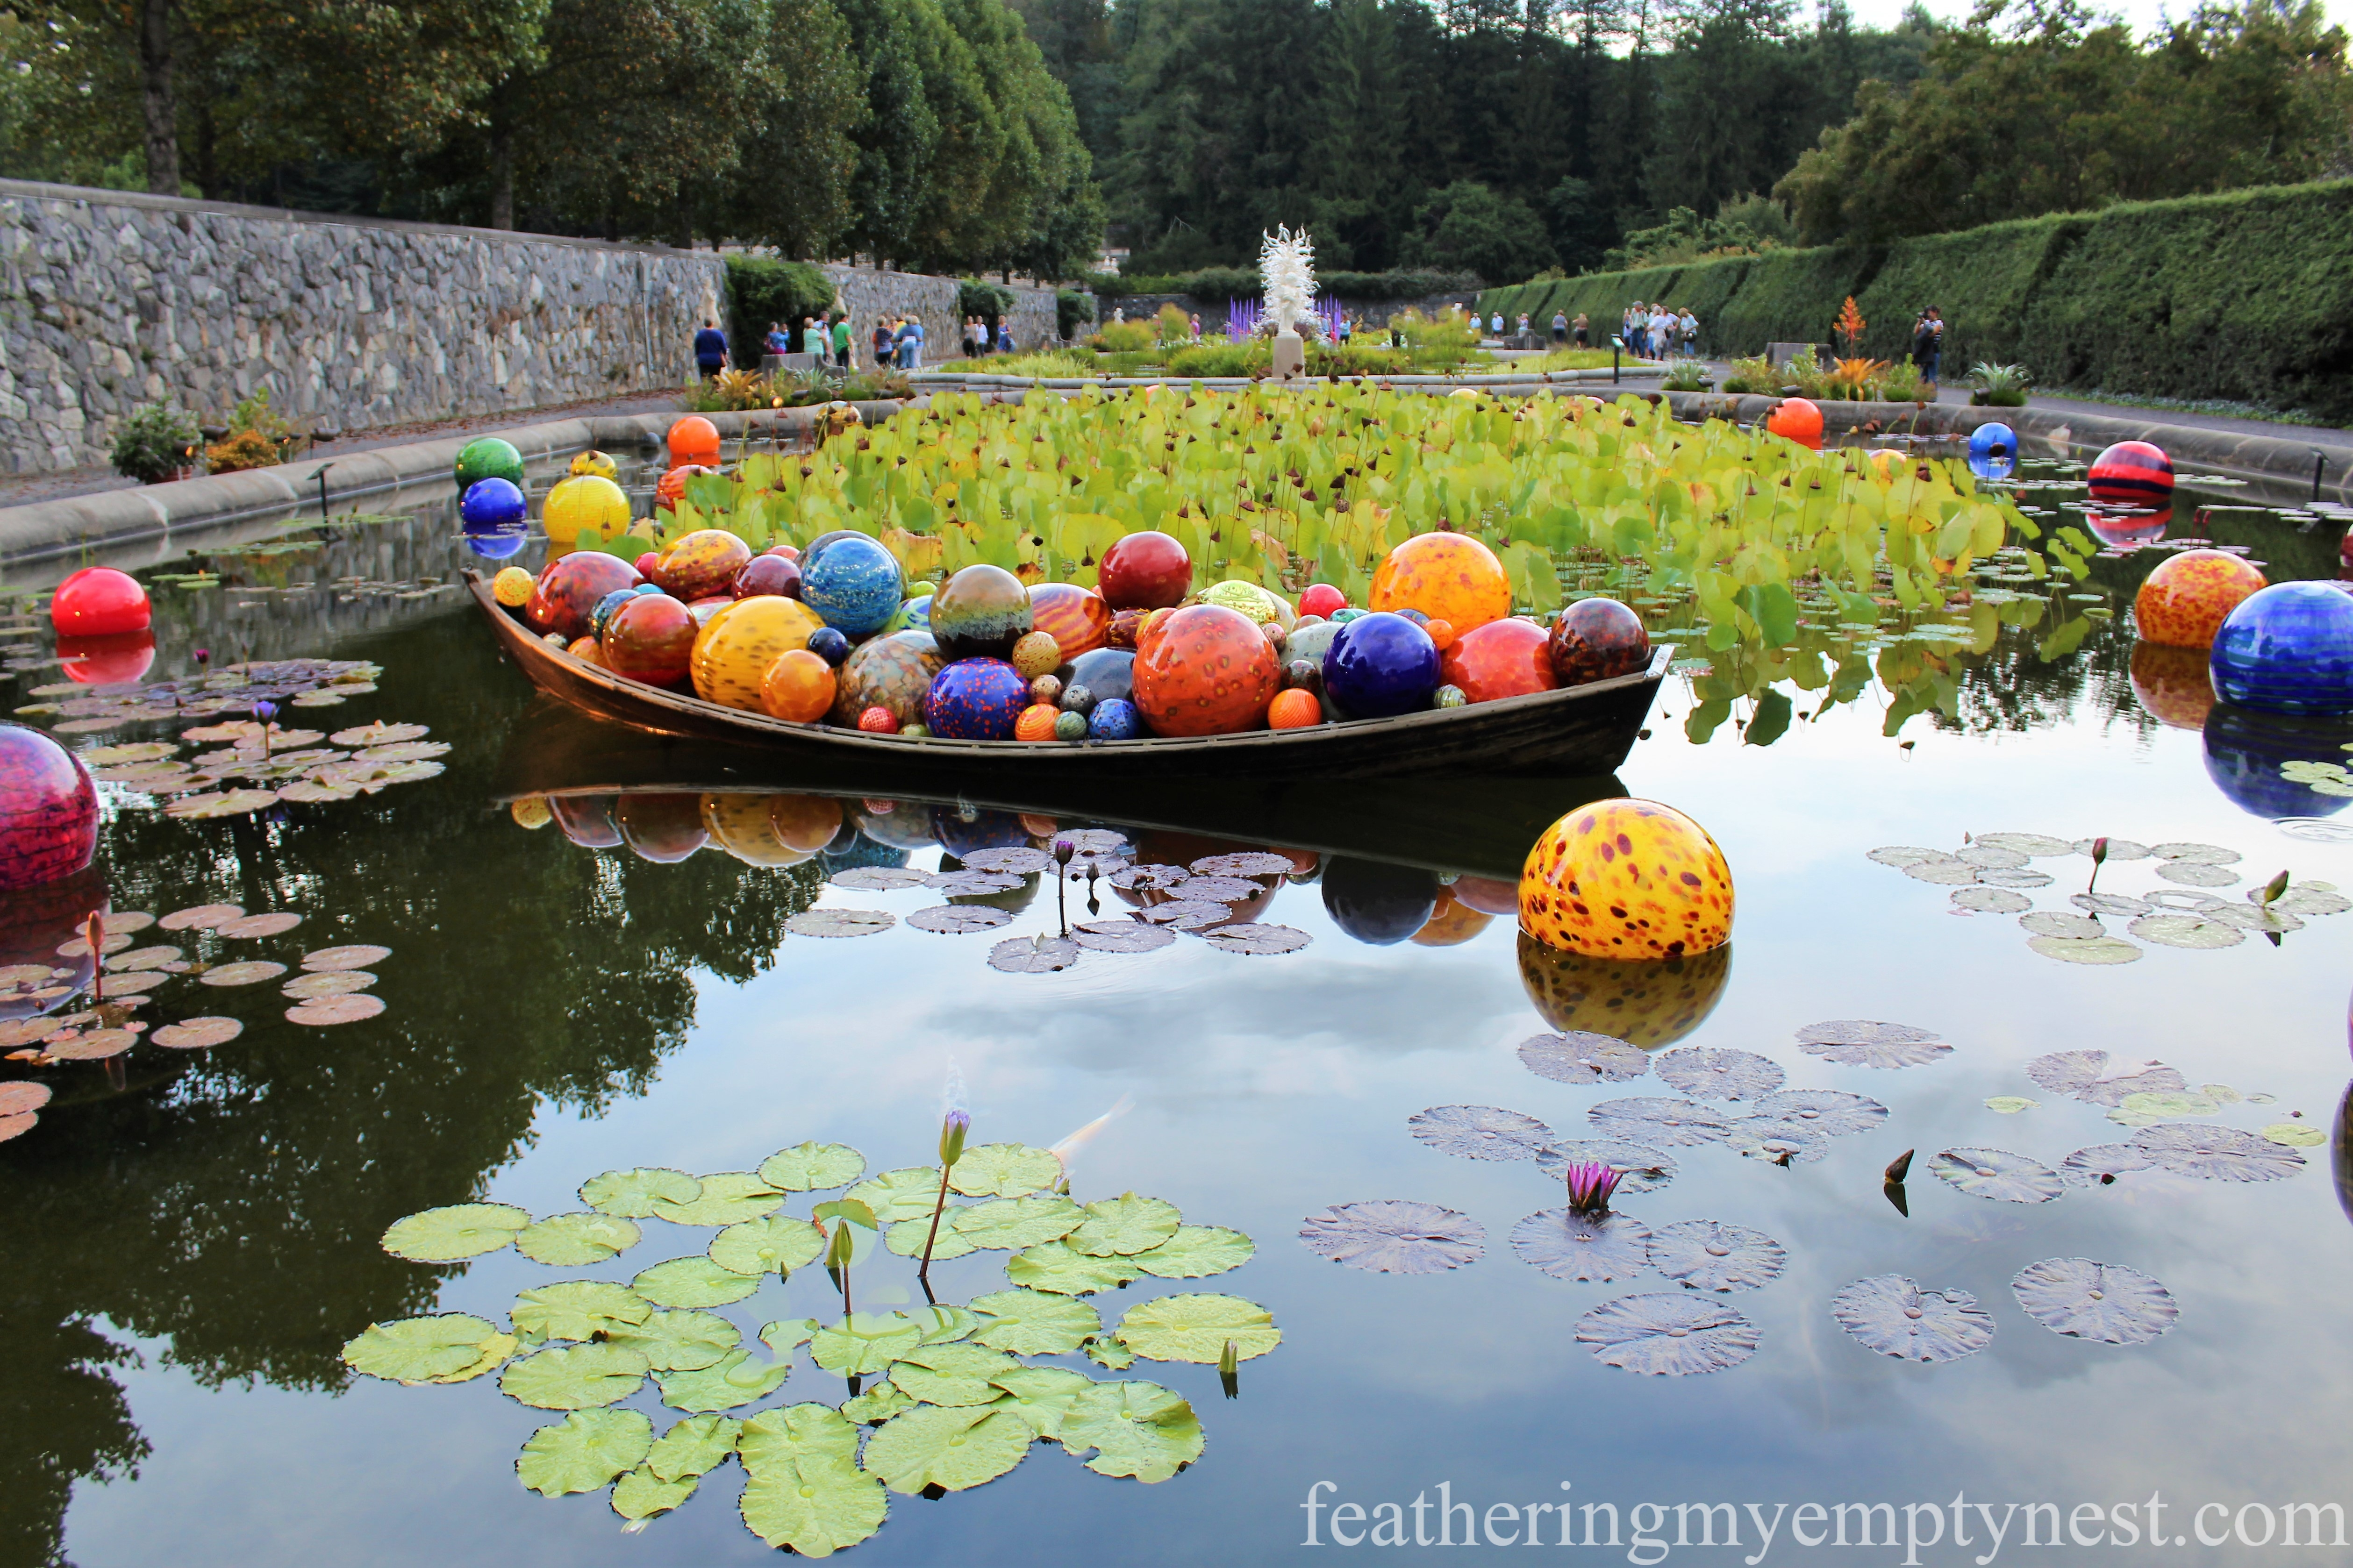 Chihuly glass sculpture installation in the Italian Garden at Biltmore --Chihuly At Night At The Biltmore